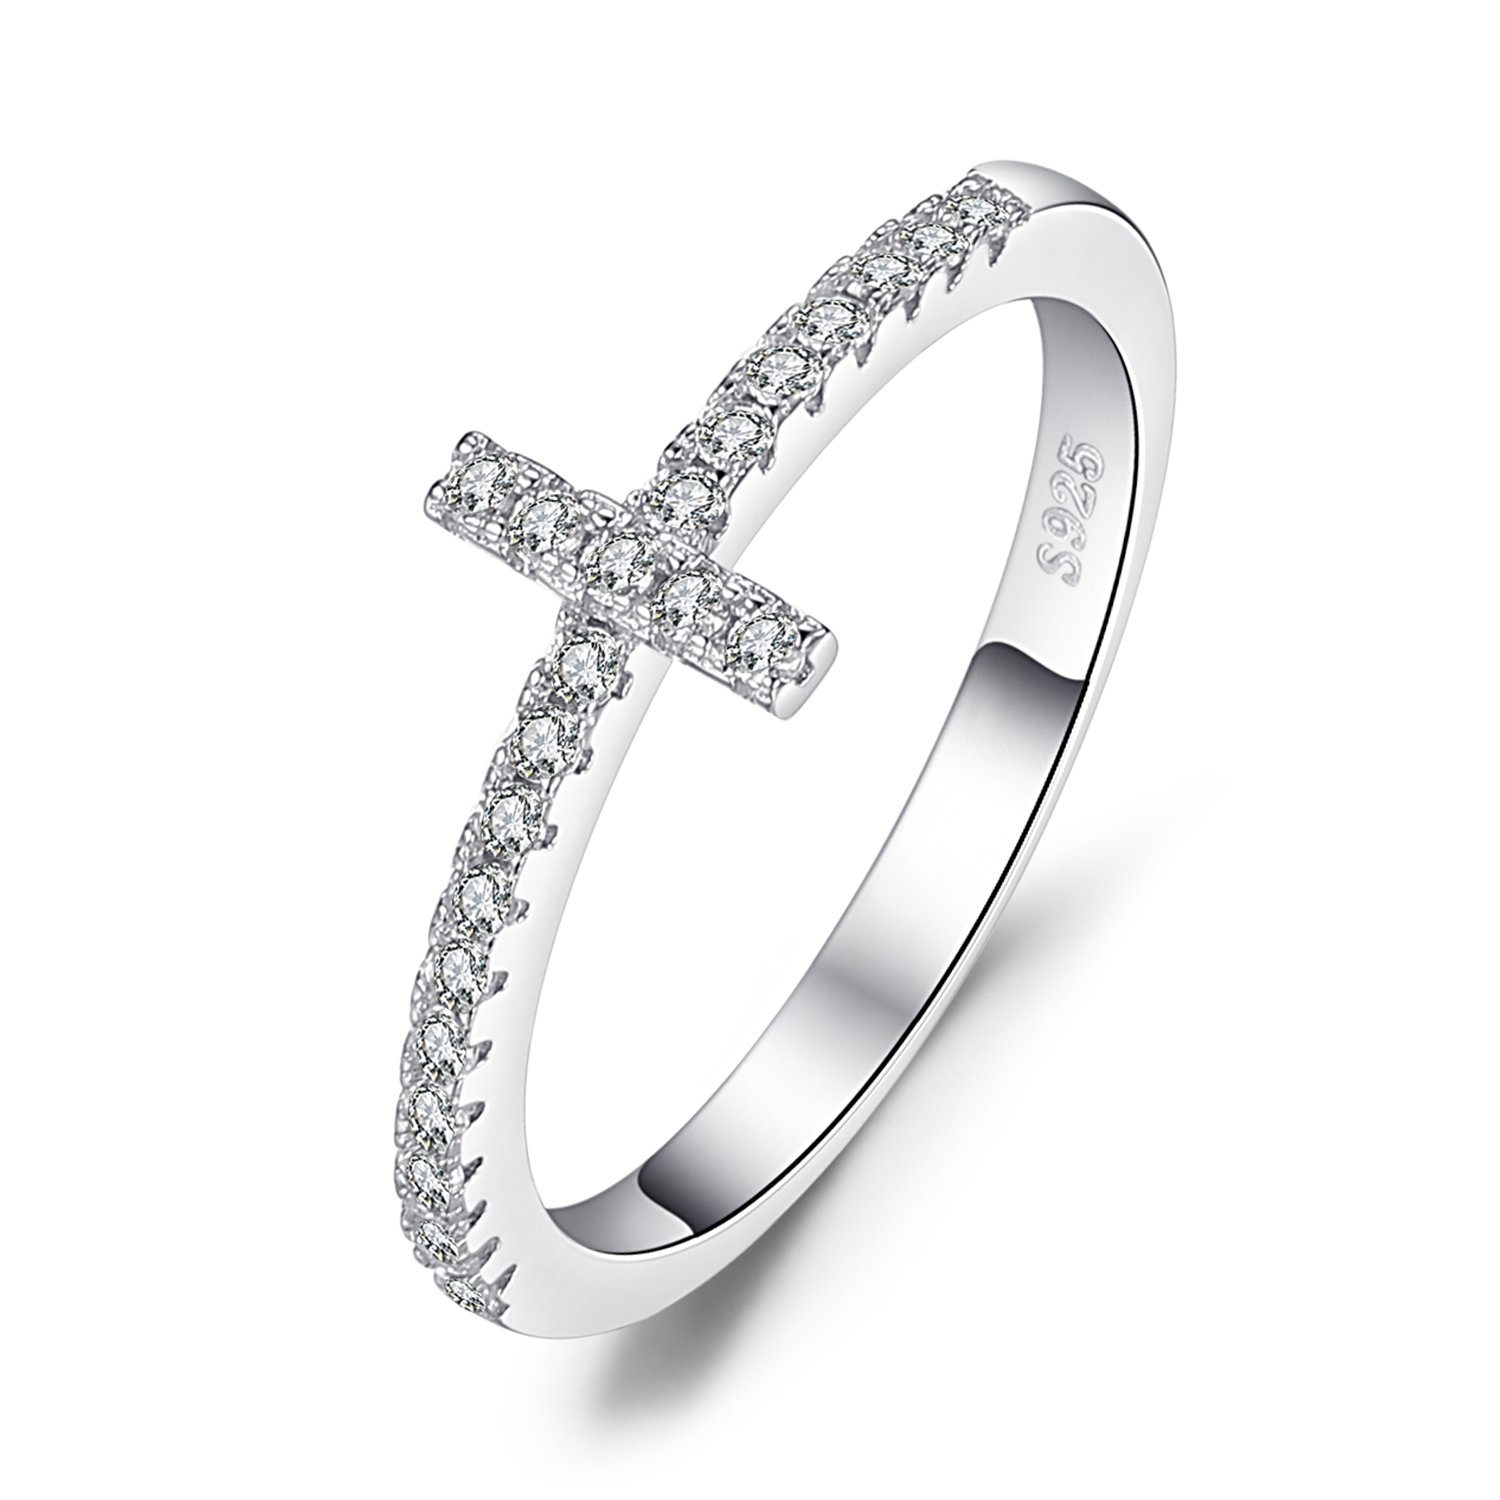 JewelryPalace 925 Sterling Argento Cubic Zirconia Croce Laterale Anello EU-BR349499